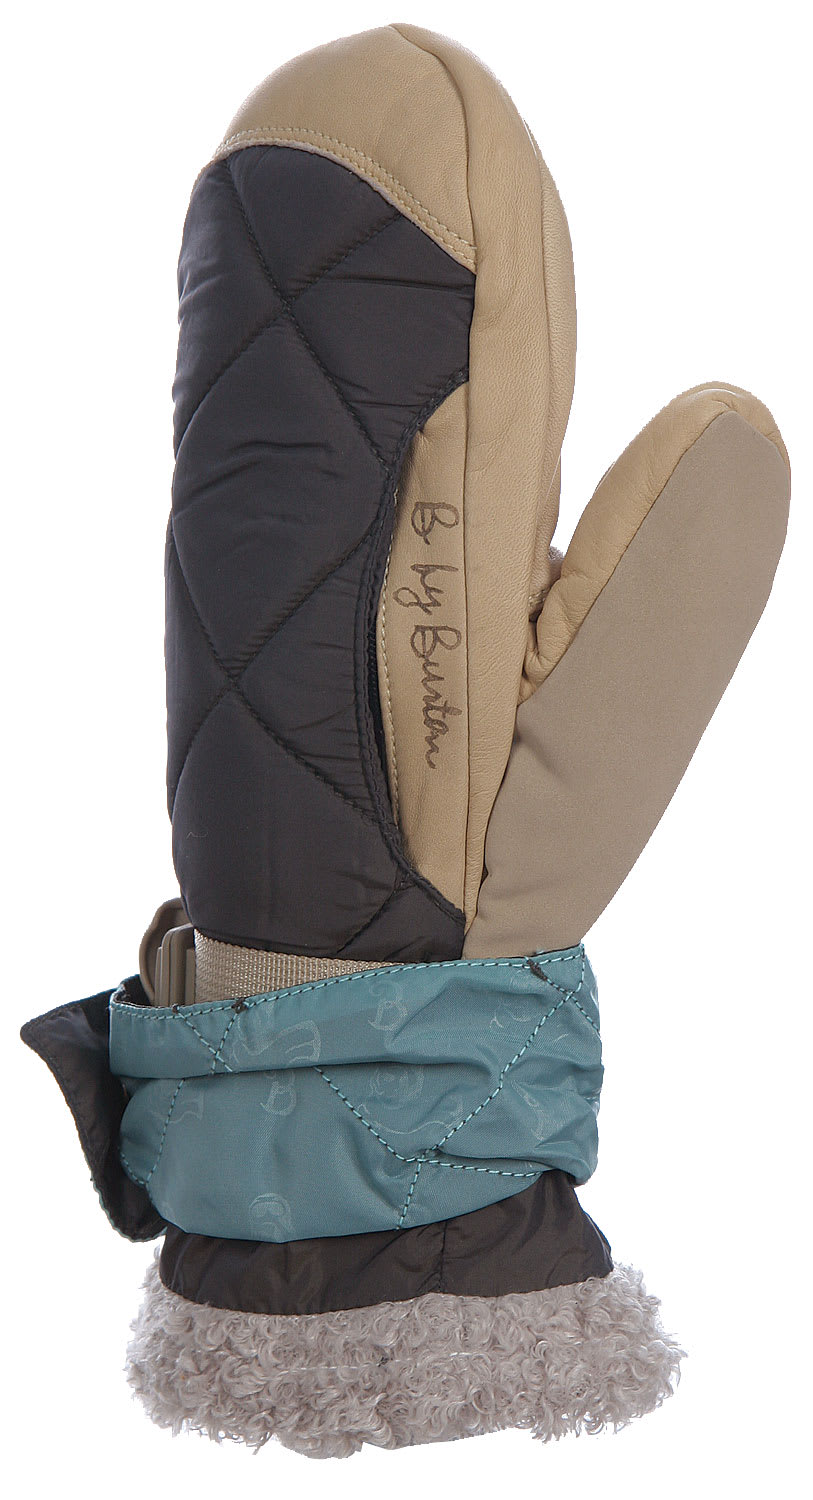 Wakeboards For Sale >> On Sale Burton Combo Mittens - Womens up to 80% off